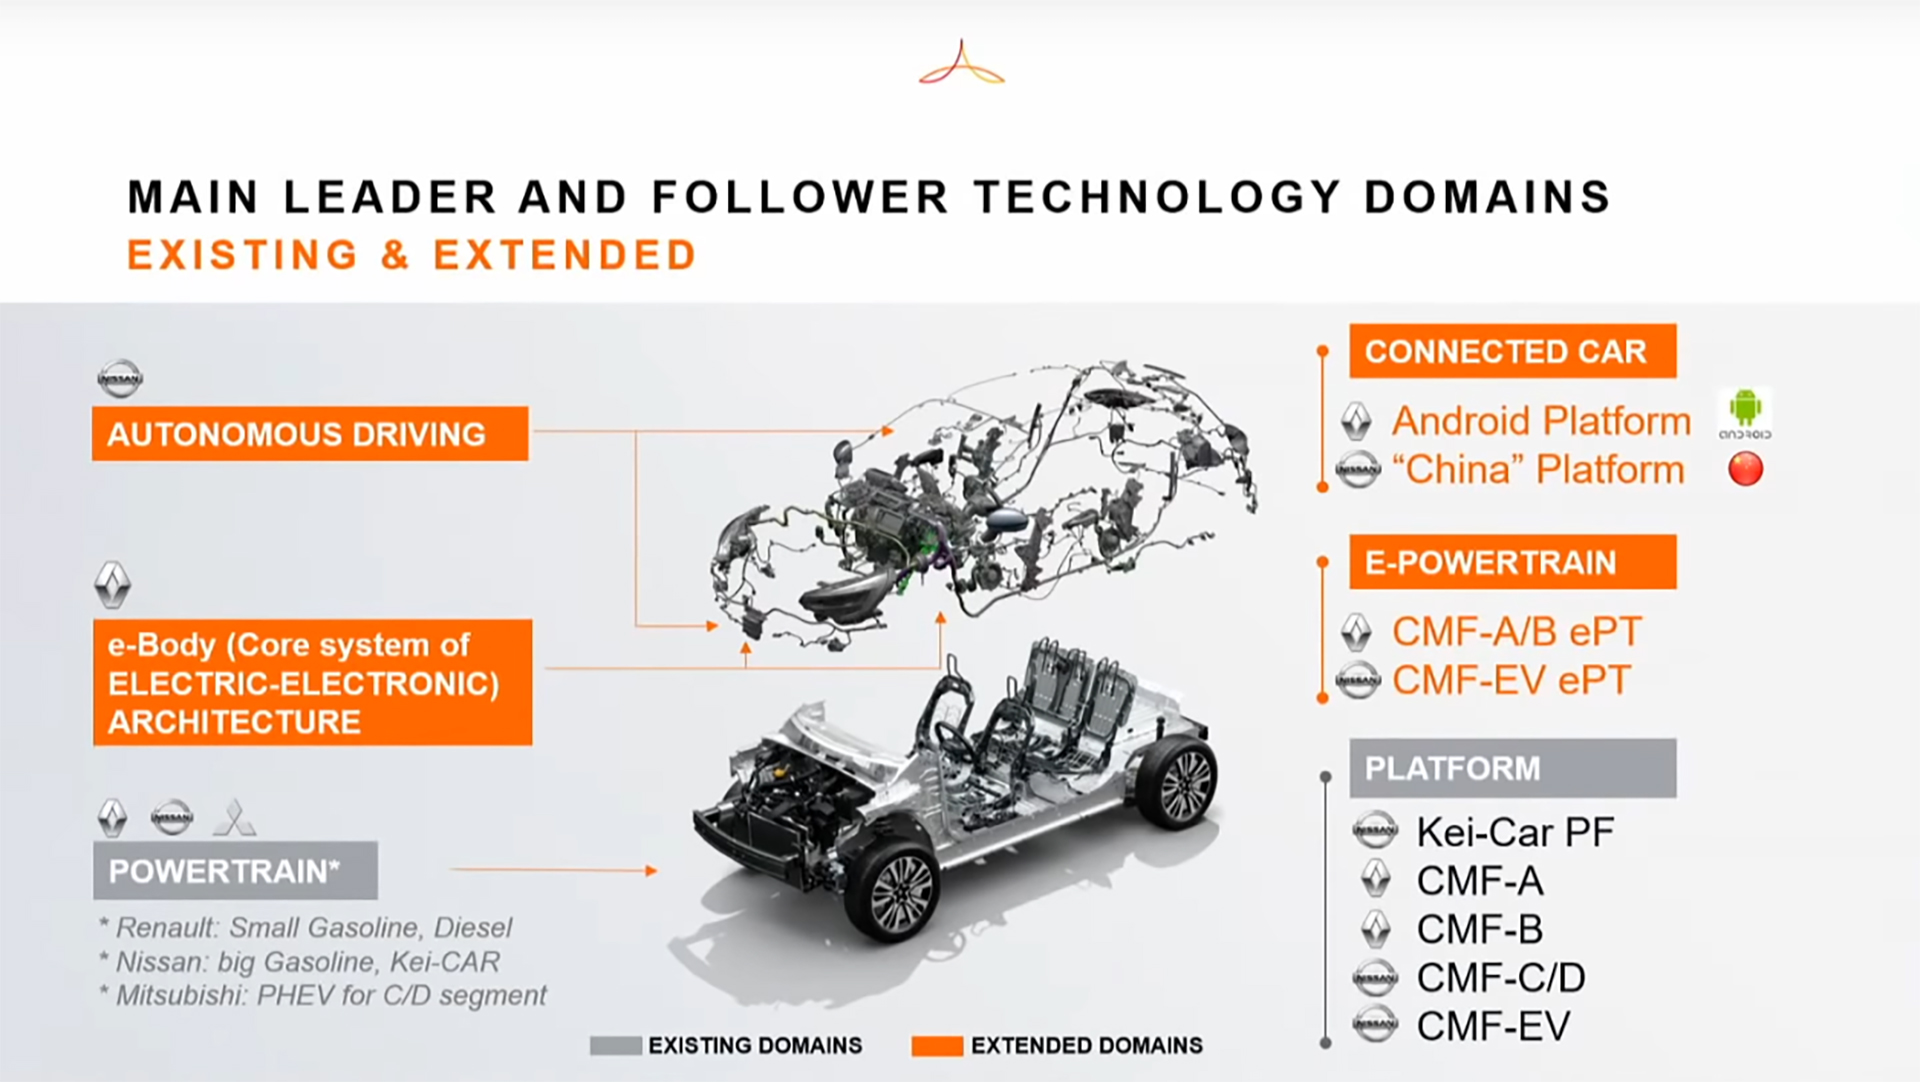 Alliance Renault Nissan Mitsubishi - 2020 - Alliance new cooperation business model - technology domains